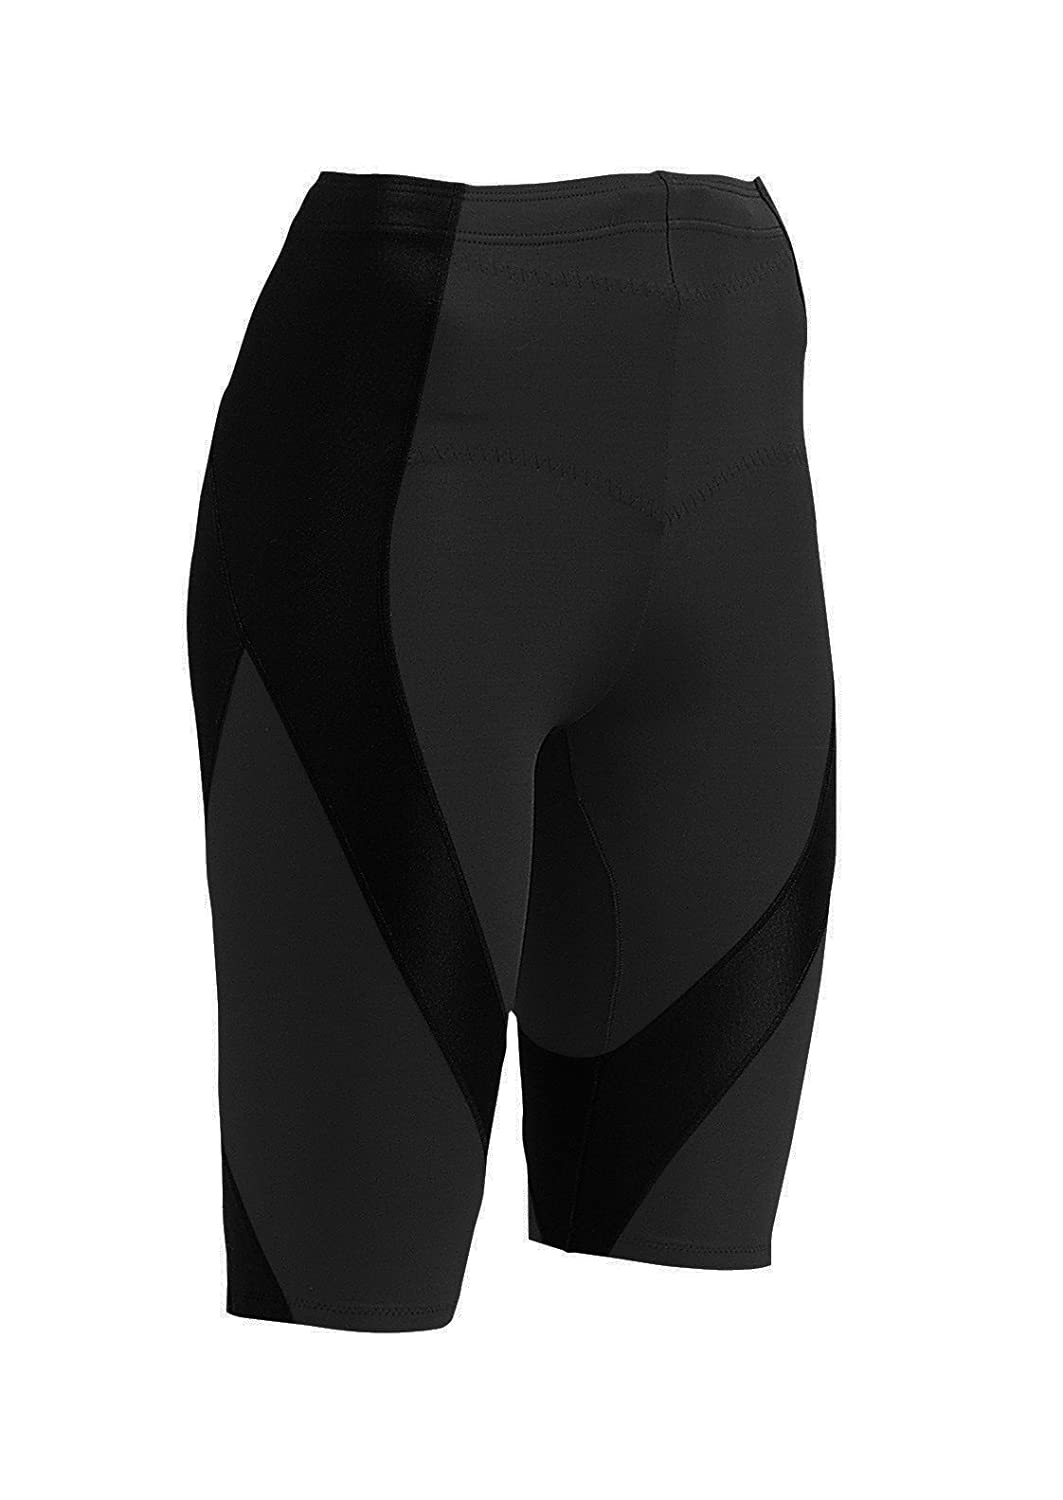 CW-X Women's Muscle Support Endurance Pro Athletic Compression Short 140805